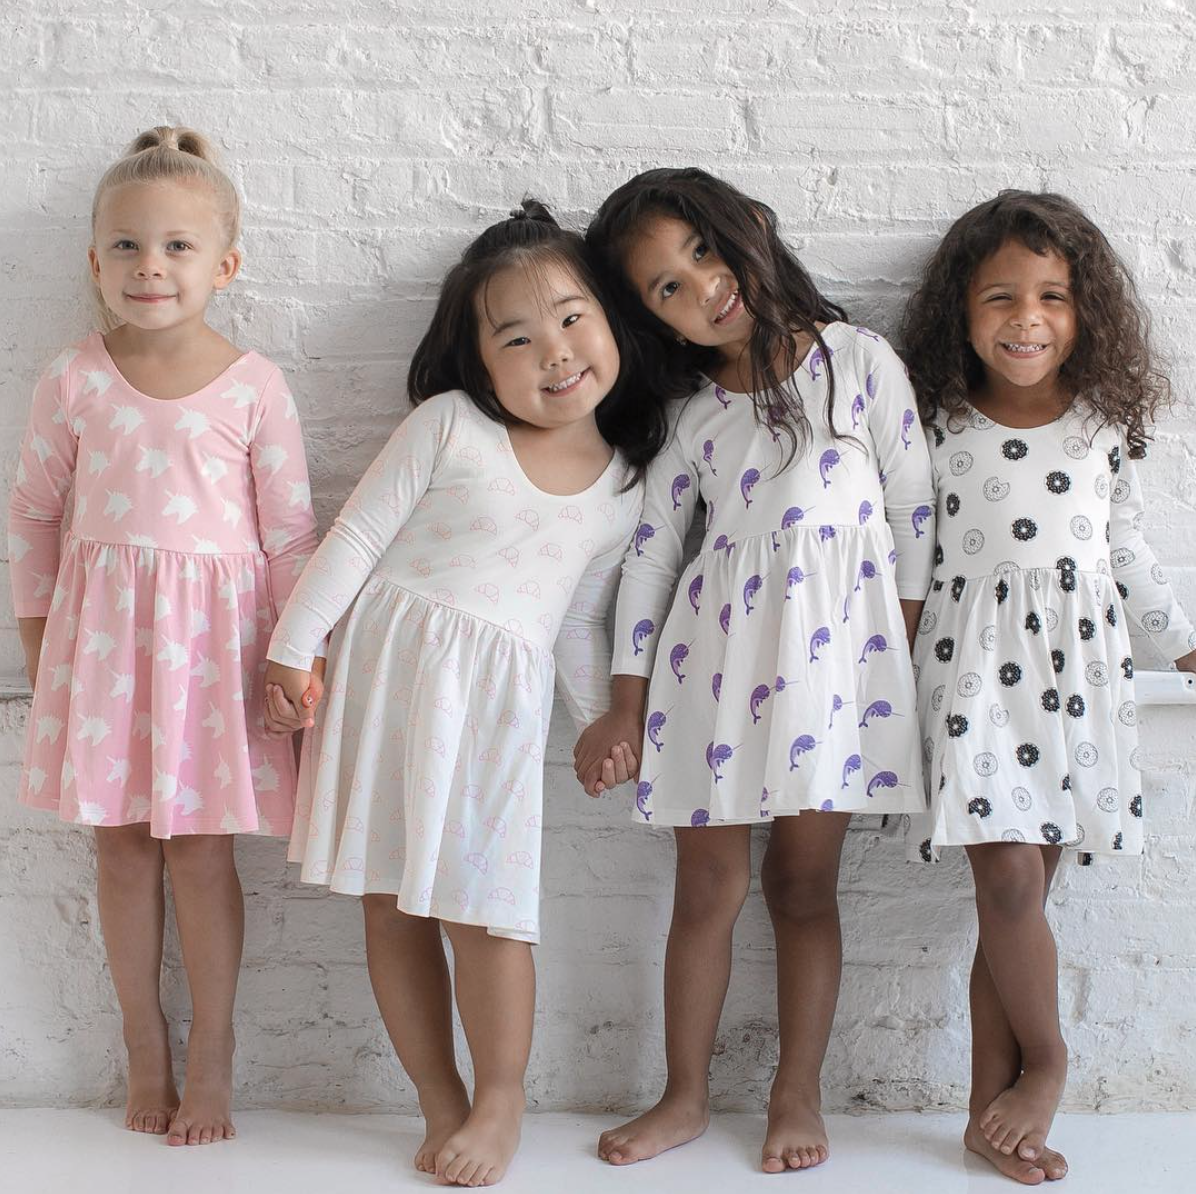 If you have a little girl who loves a great twirly dress, this post is for you! Sharing where to find the very best twirly dresses; a.k.a., skater dresses, for kids. | glitterinc.com | @glitterinc // Monica + Andy Twirly Dresses via @monicaandandy